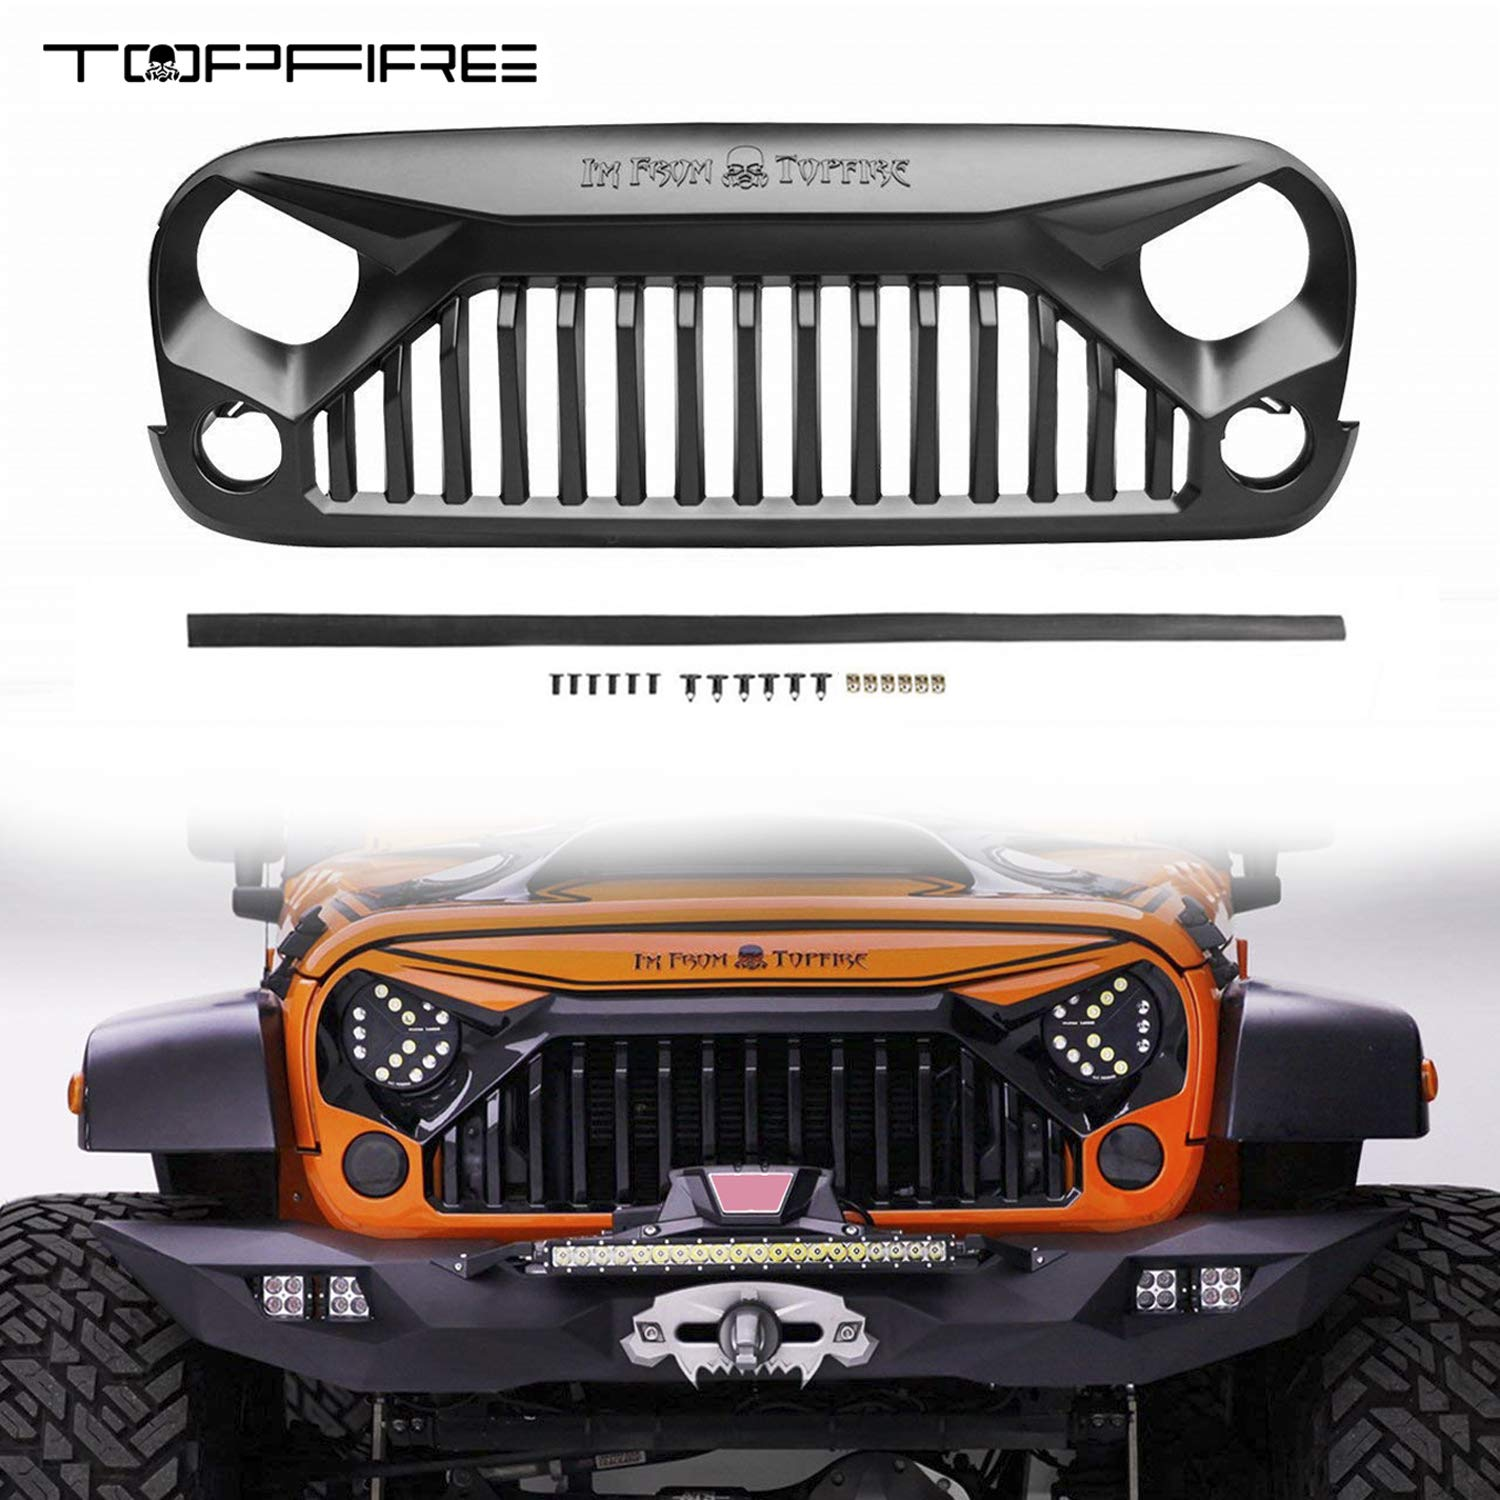 TOPFIRE Front Grill for Jeep Wrangler JK/JKU 2007-2018 Quality Painted Grill, White & Black